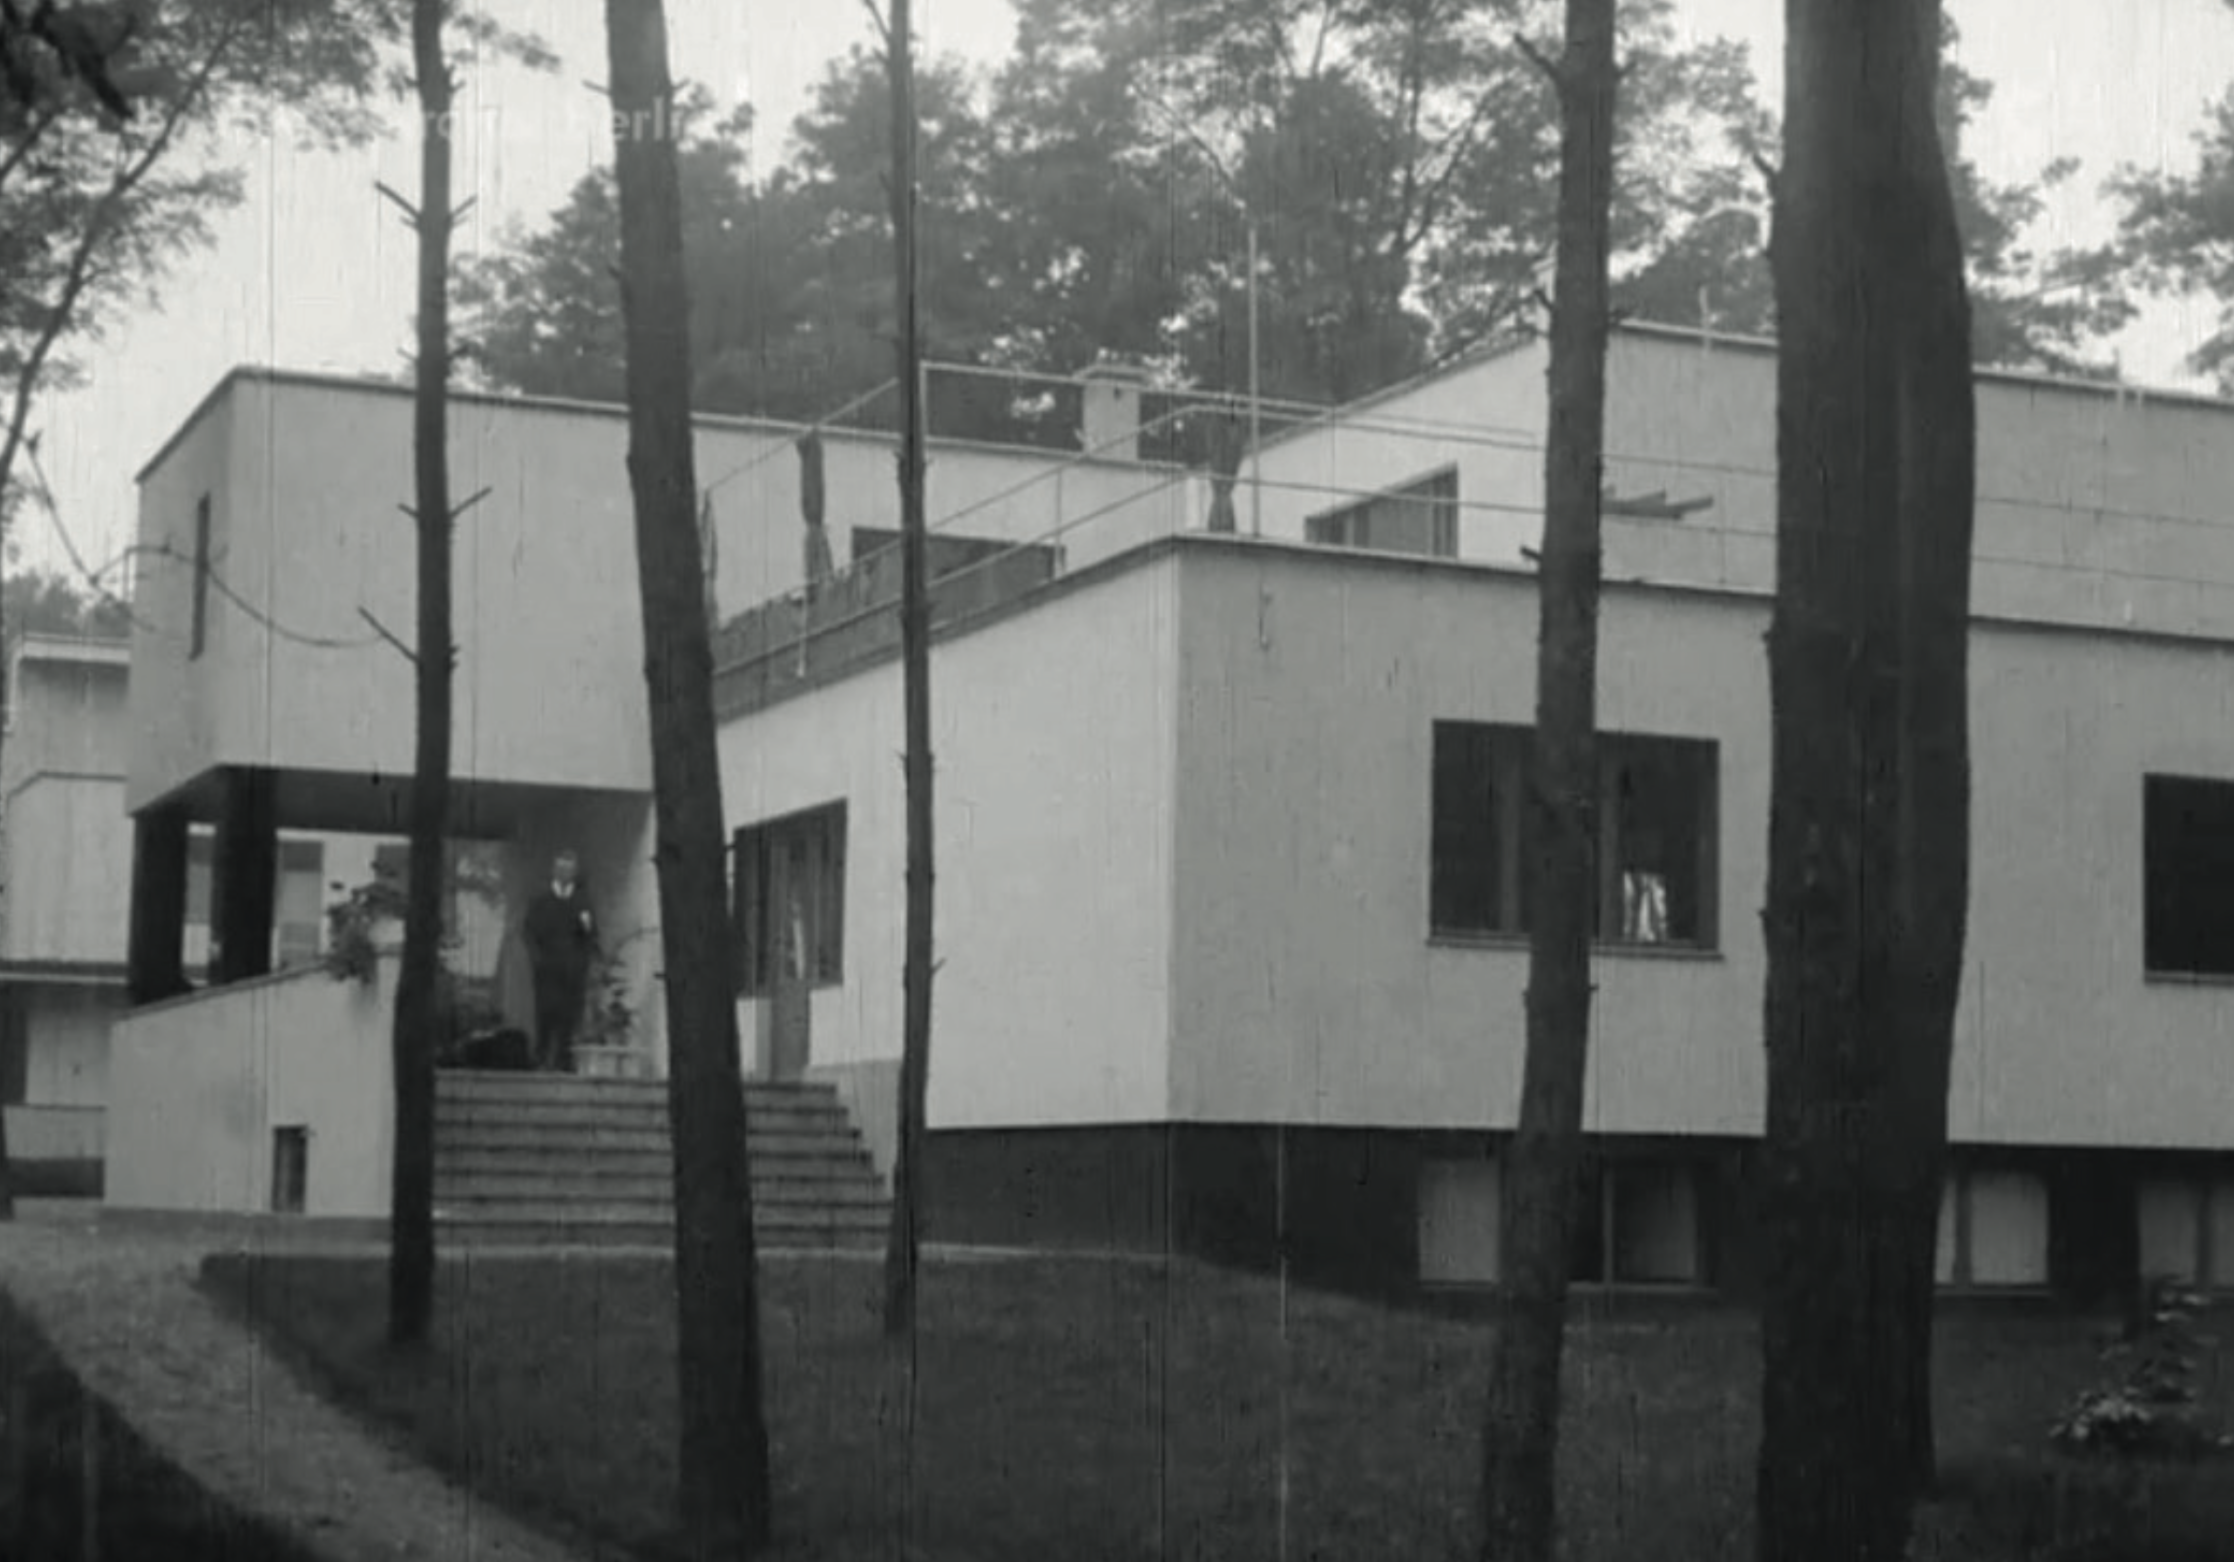 The house is remarkable for the consistent applica- tion of multiple technical innovations both in building construction and domestic technology. Image from: How to live healthily and economically? Film series in four episodes by Walter Gropius and the Humboldt film GMBH, 1926.